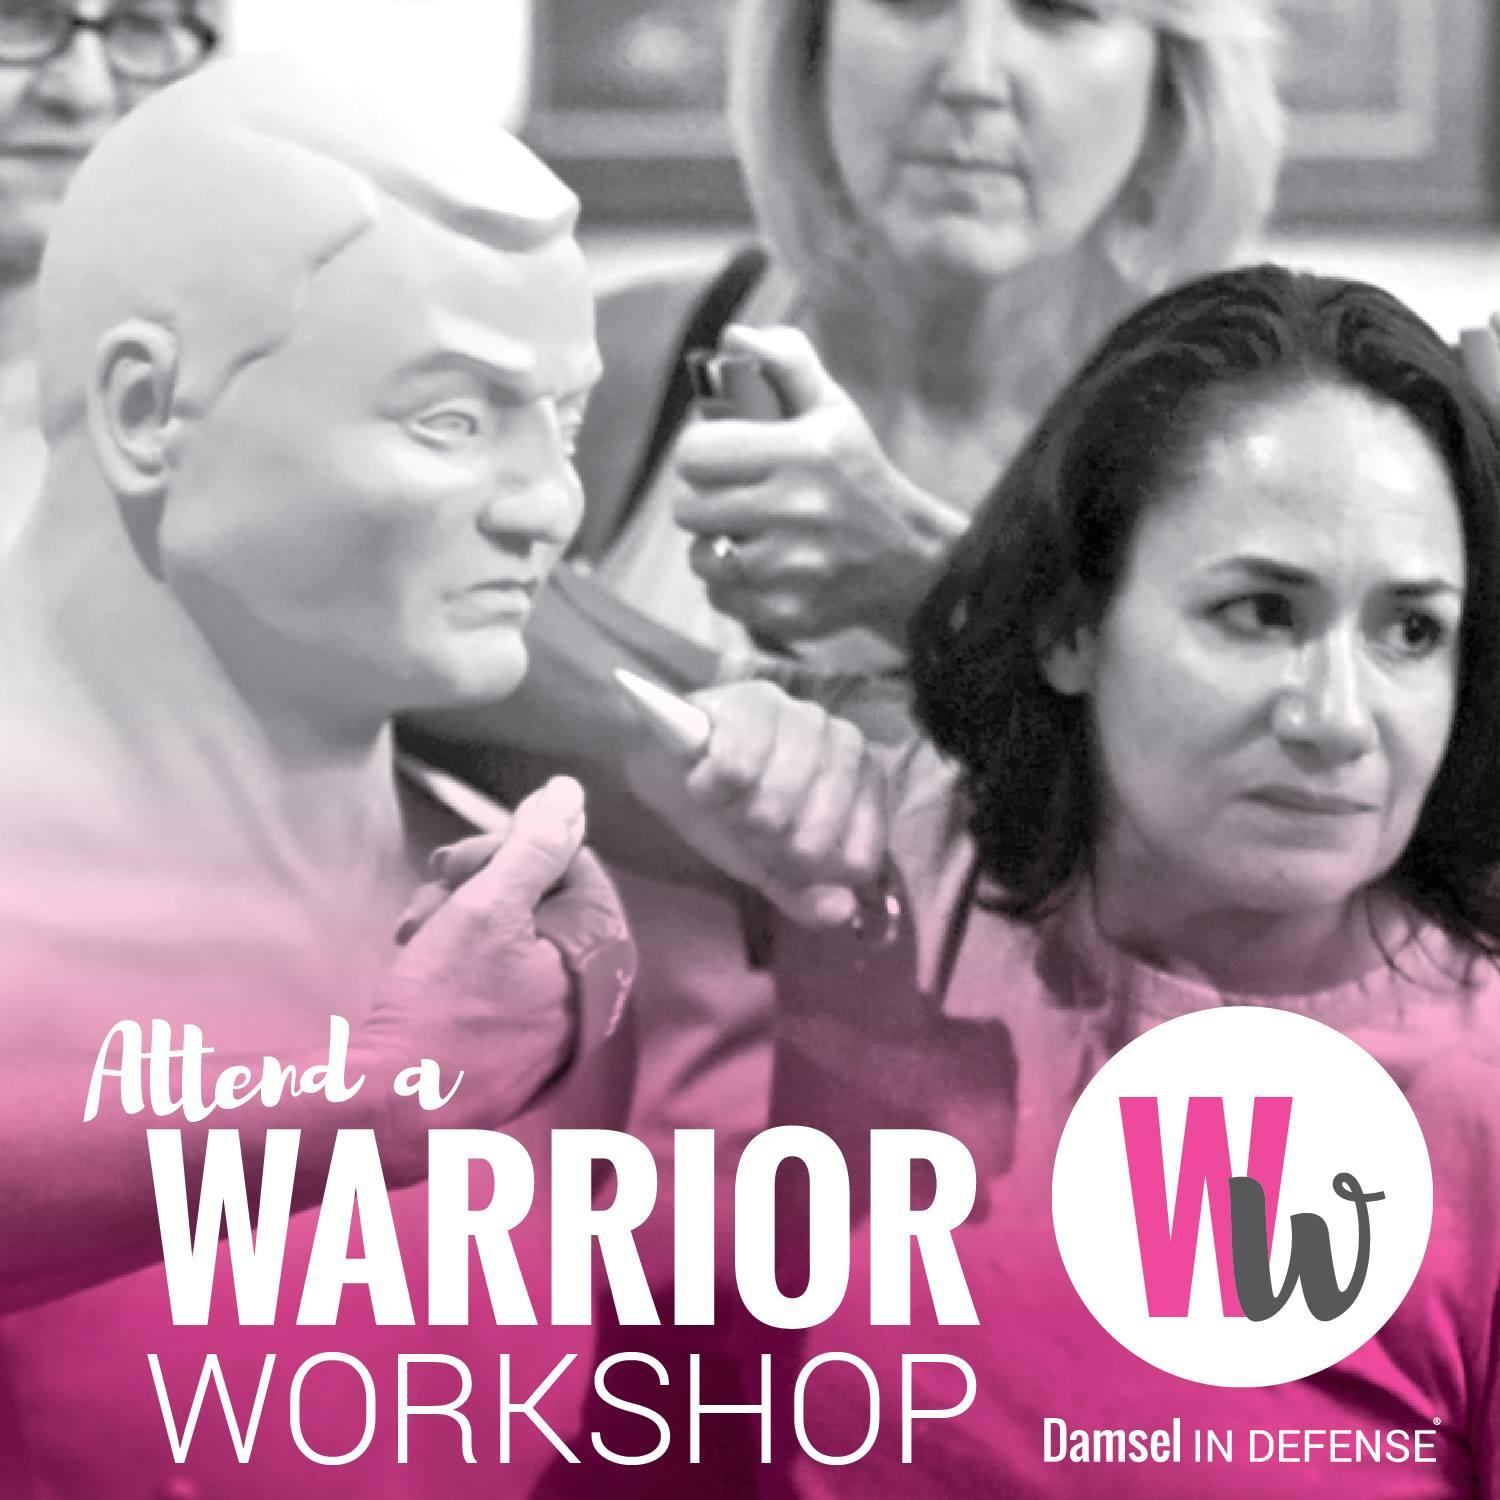 Safety and Self Defense Workshop with Damsel in Defense